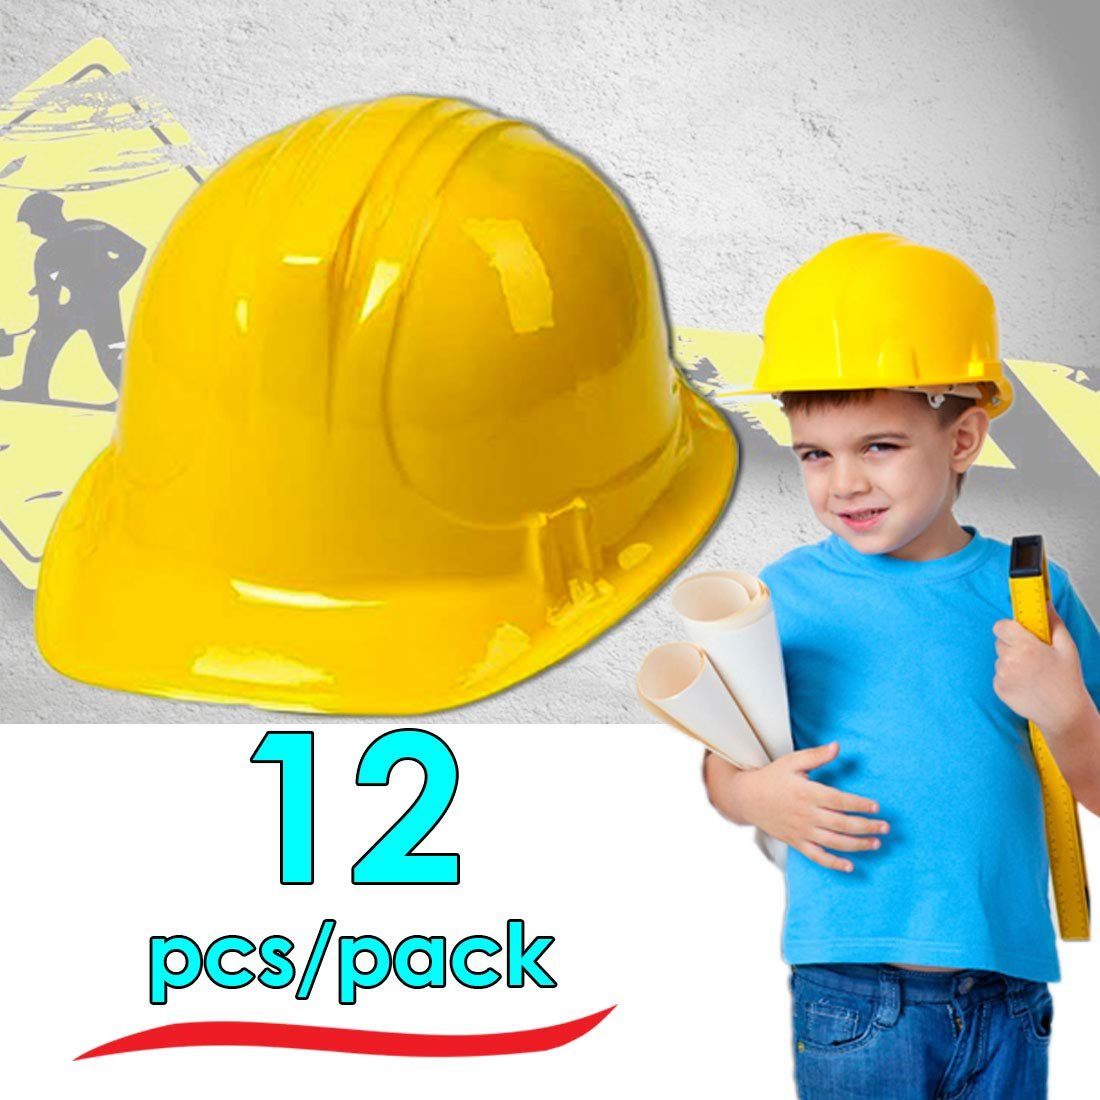 Dazzling Toys Pack of 12 Holiday Construction Hats | Building Supplies Yellow Construction Hat | Accessory for kids Building Projects